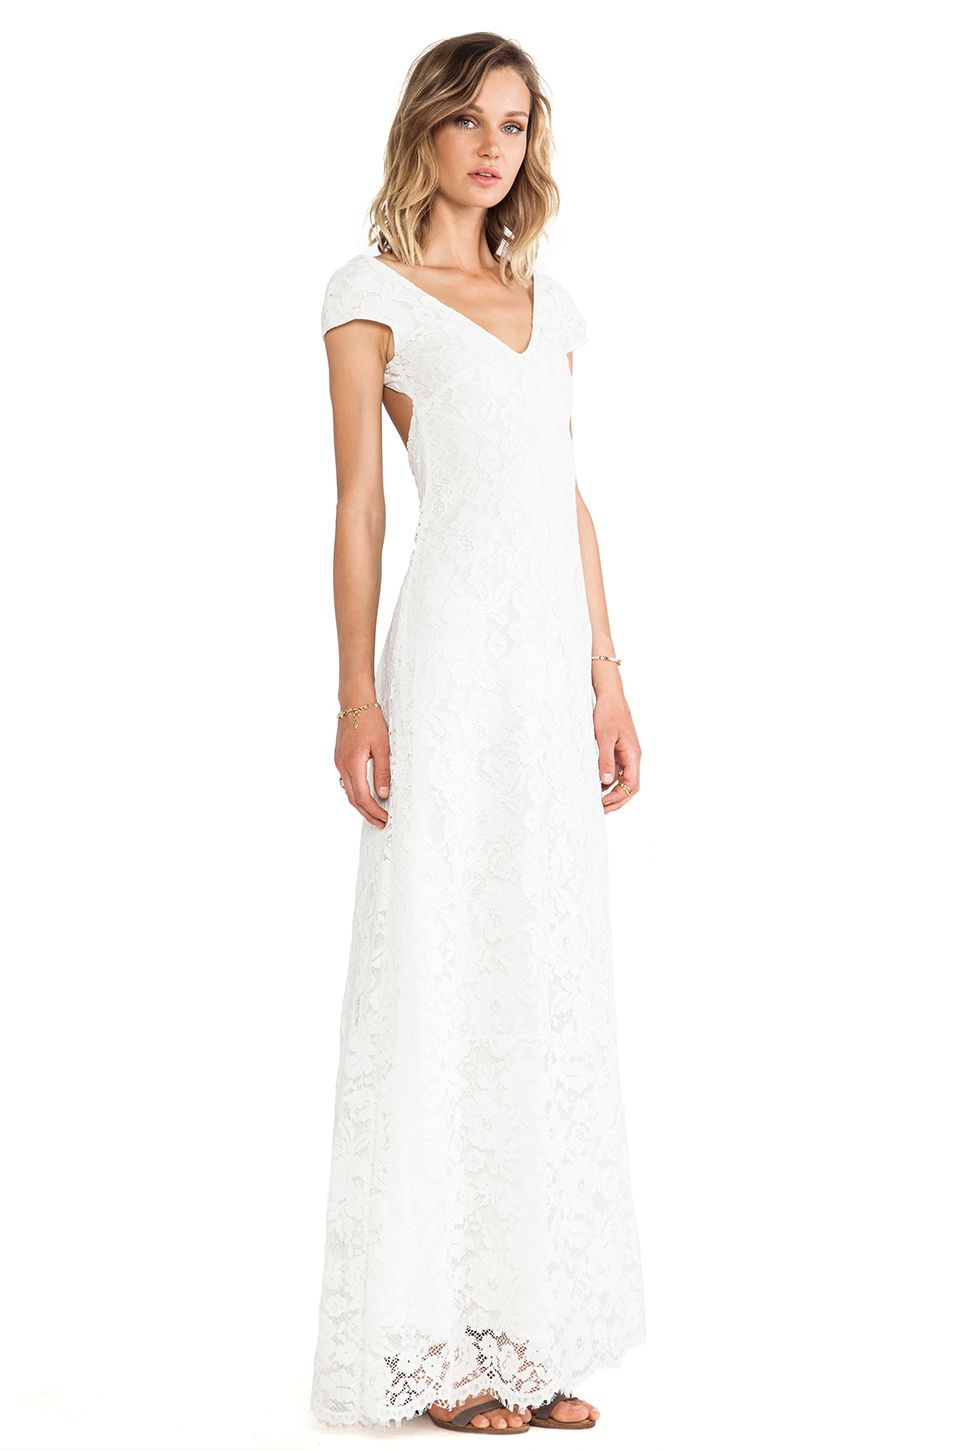 Lovers friends vanity fair dress in white lace revolve love